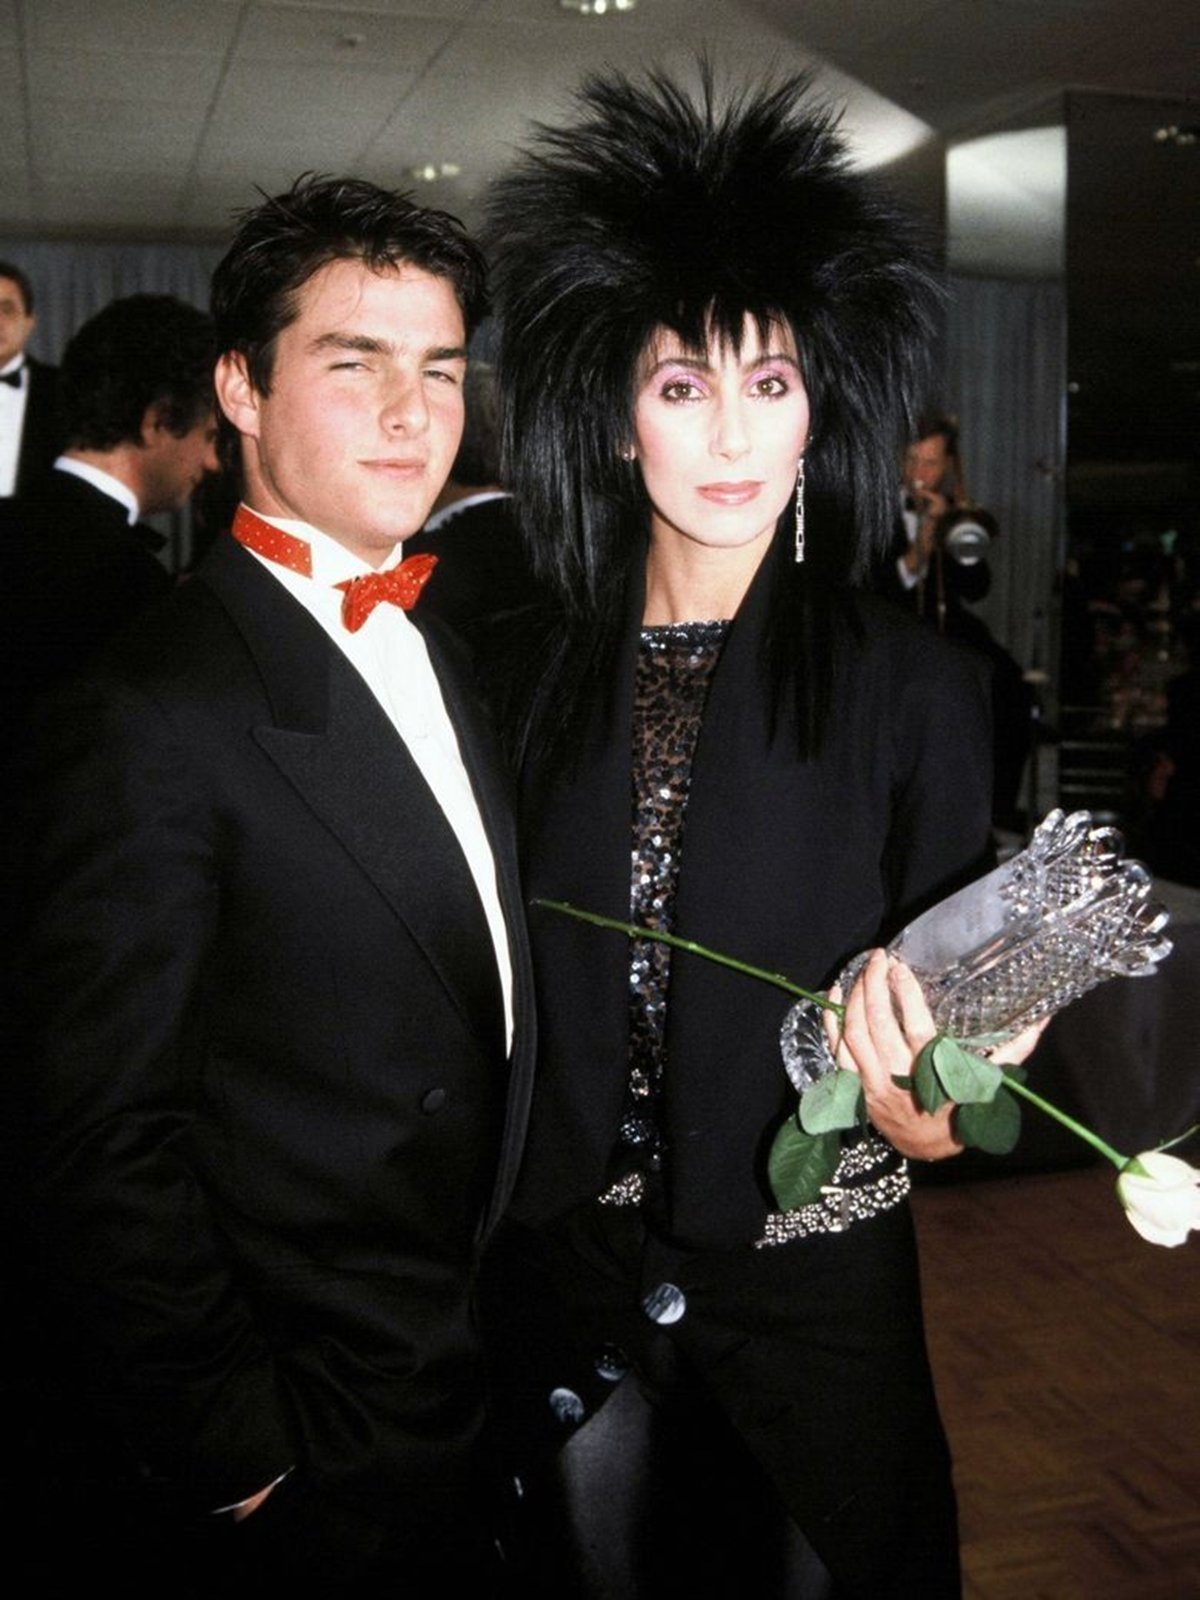 11 1 13 Celebrity Couples You Forgot Were Ever An Item